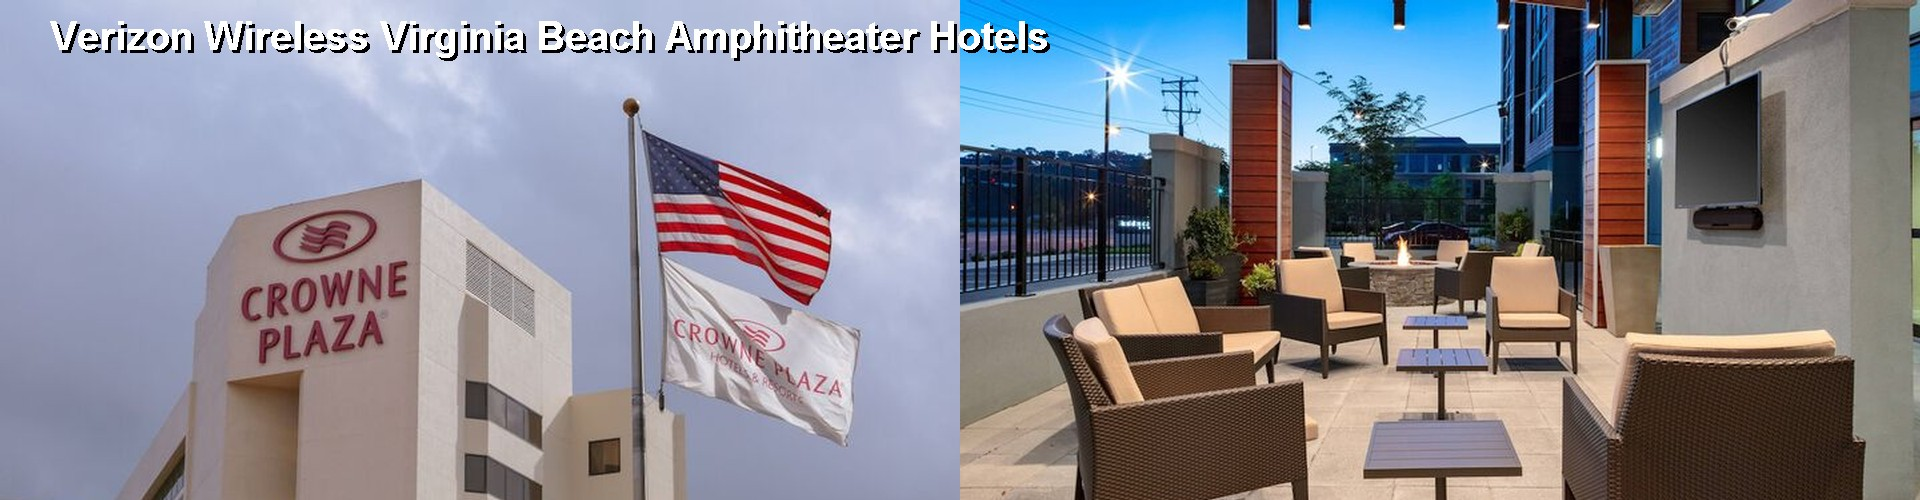 $40+ Hotels Near Verizon Wireless Virginia Beach Amphitheater (VA)